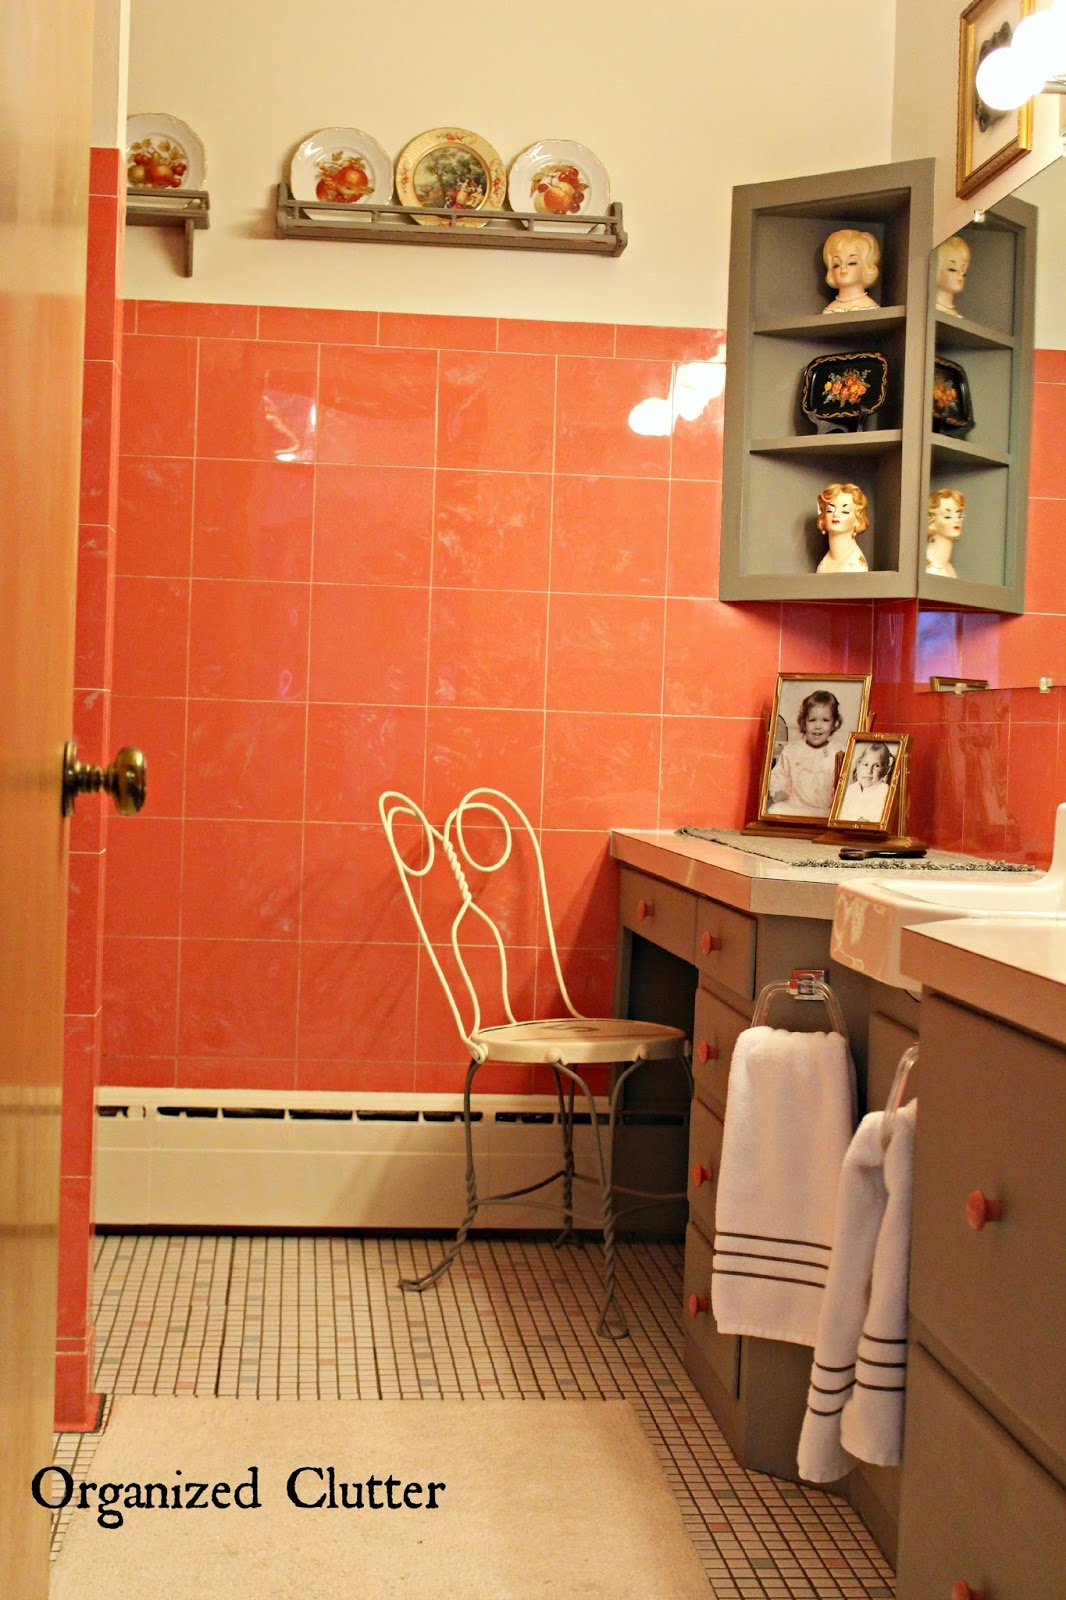 Period Decor in a Vintage Bathroom www.organizedclutterqueen.blogspot.com